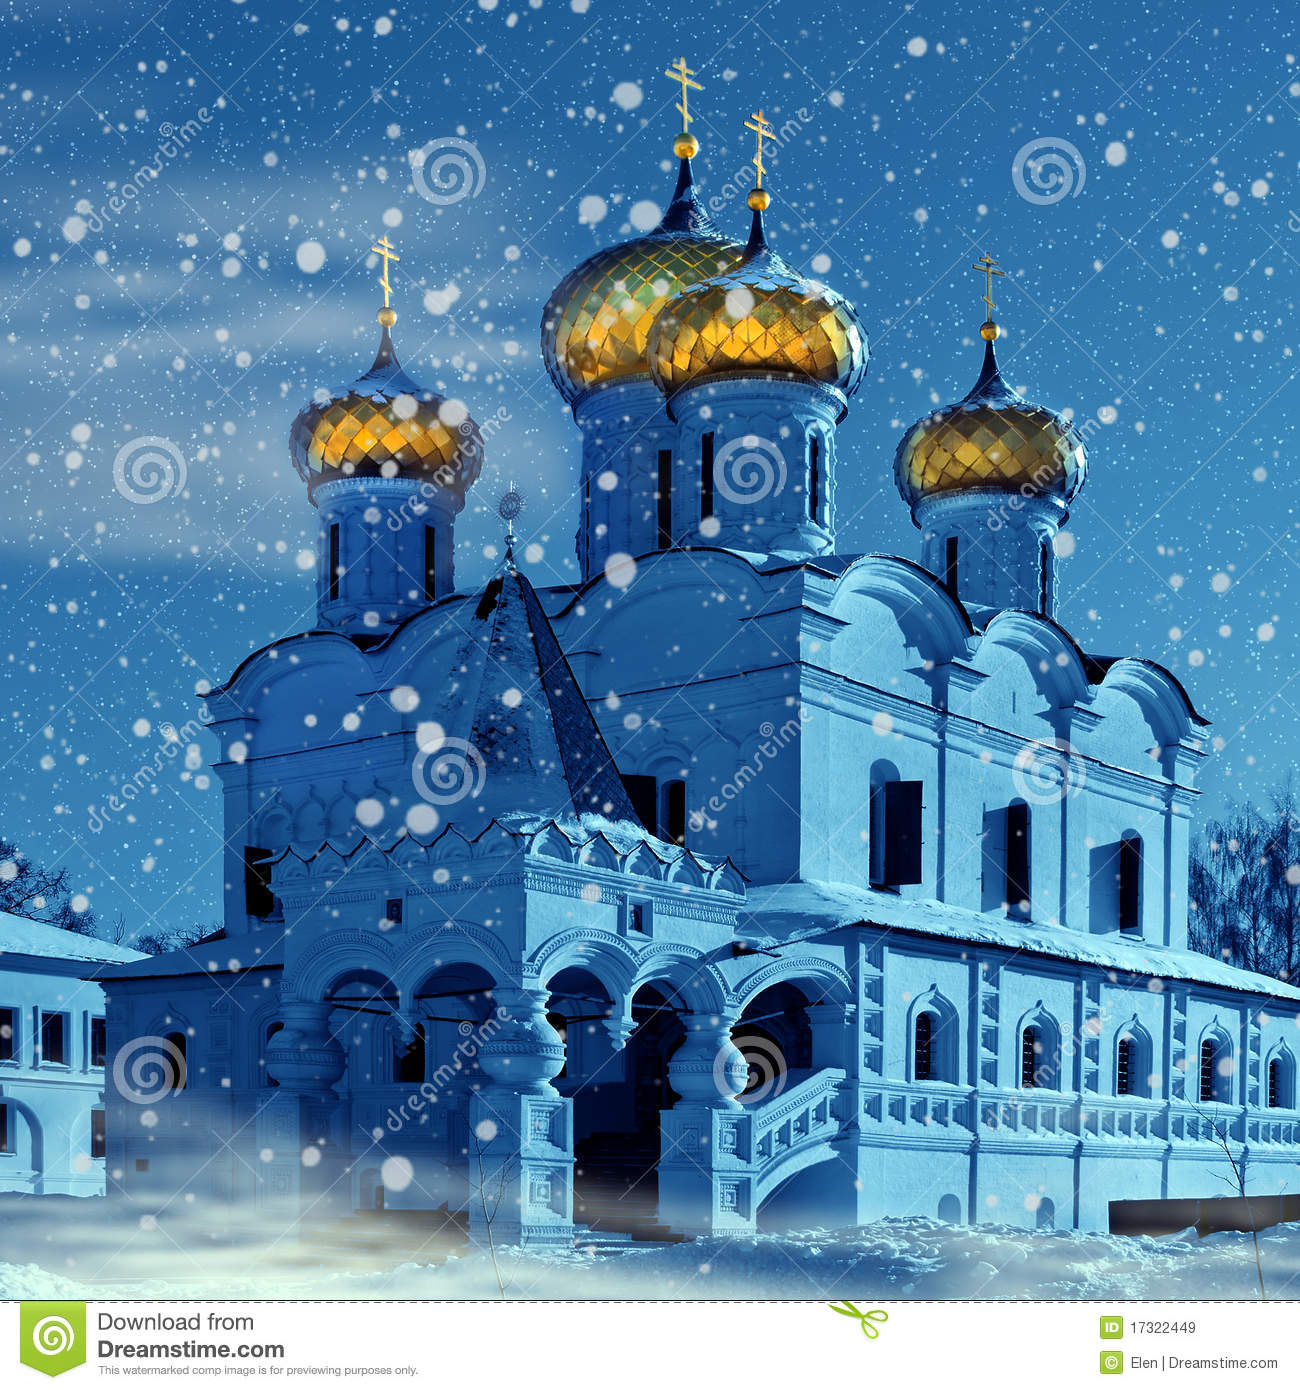 christentumkirche in russland weihnachten lizenzfreie. Black Bedroom Furniture Sets. Home Design Ideas